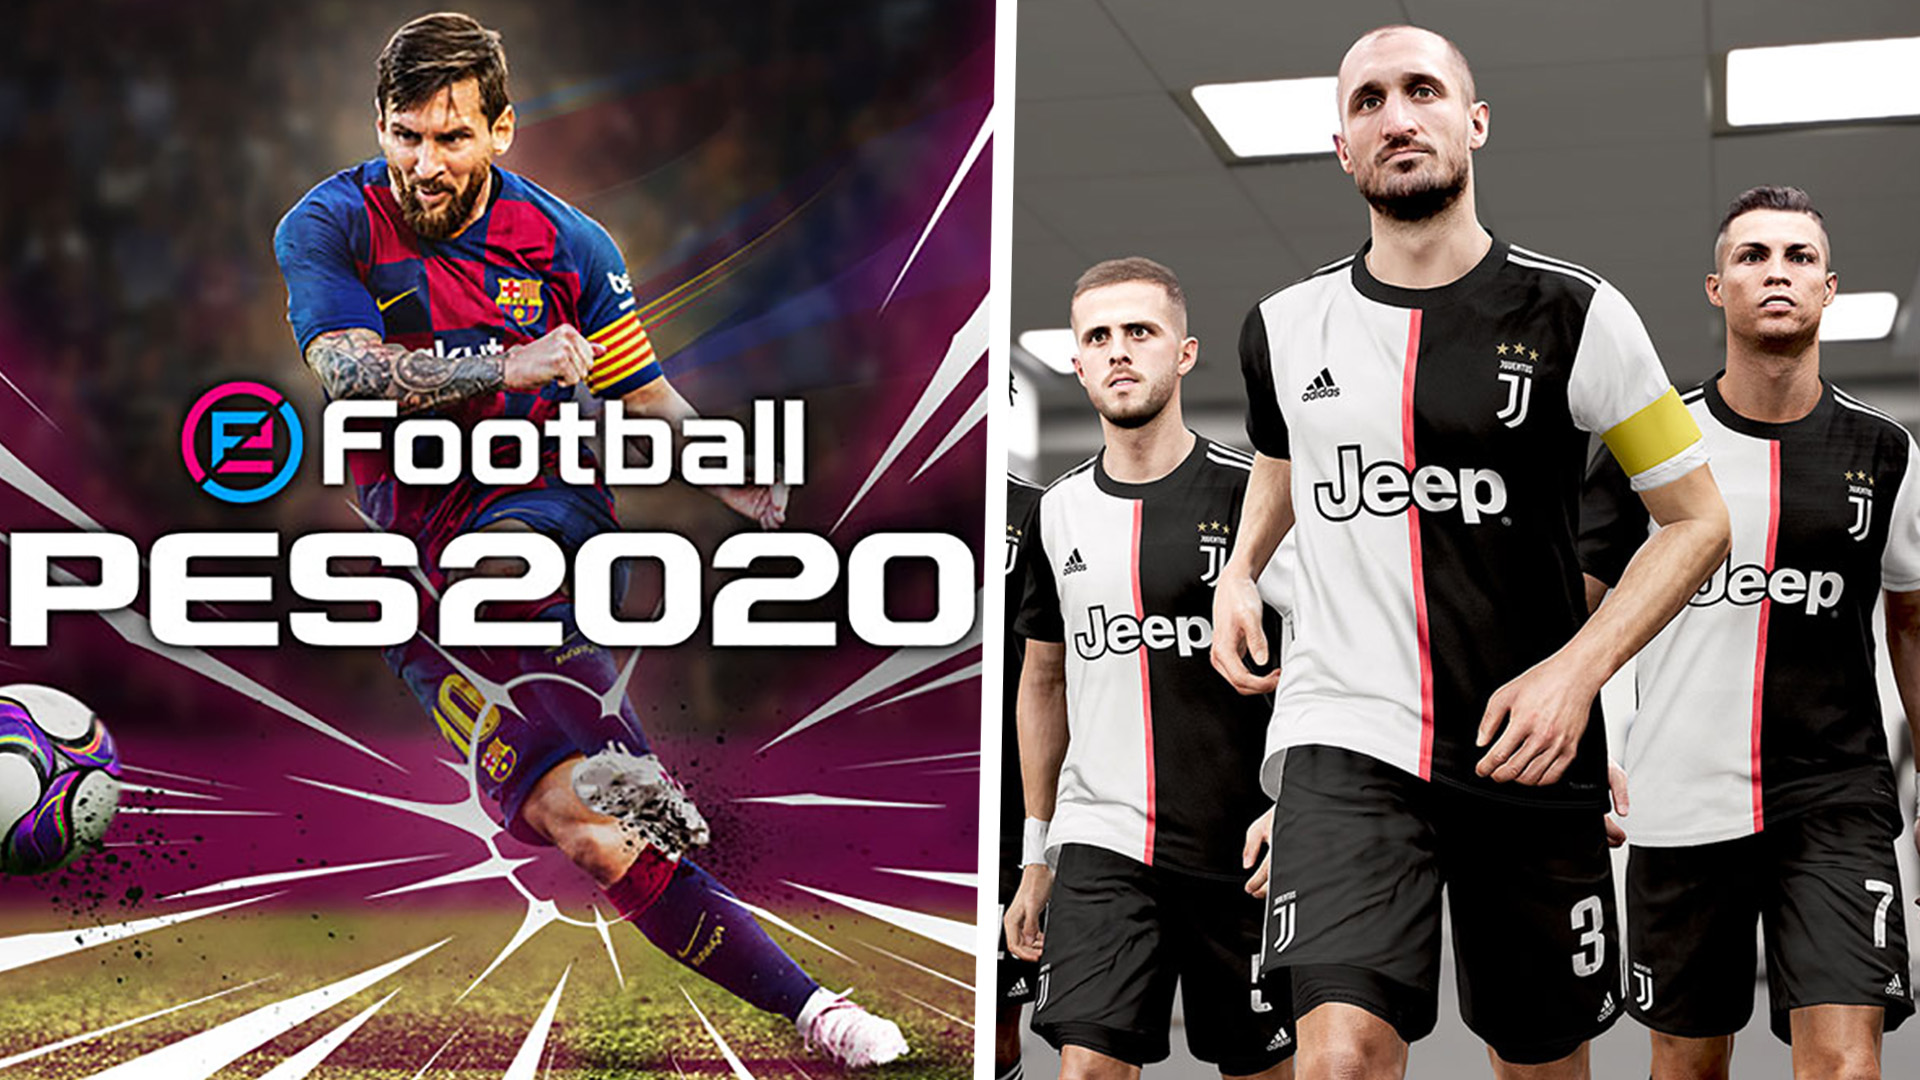 PES 2020: Release date, demo, licenses, cover stars & all